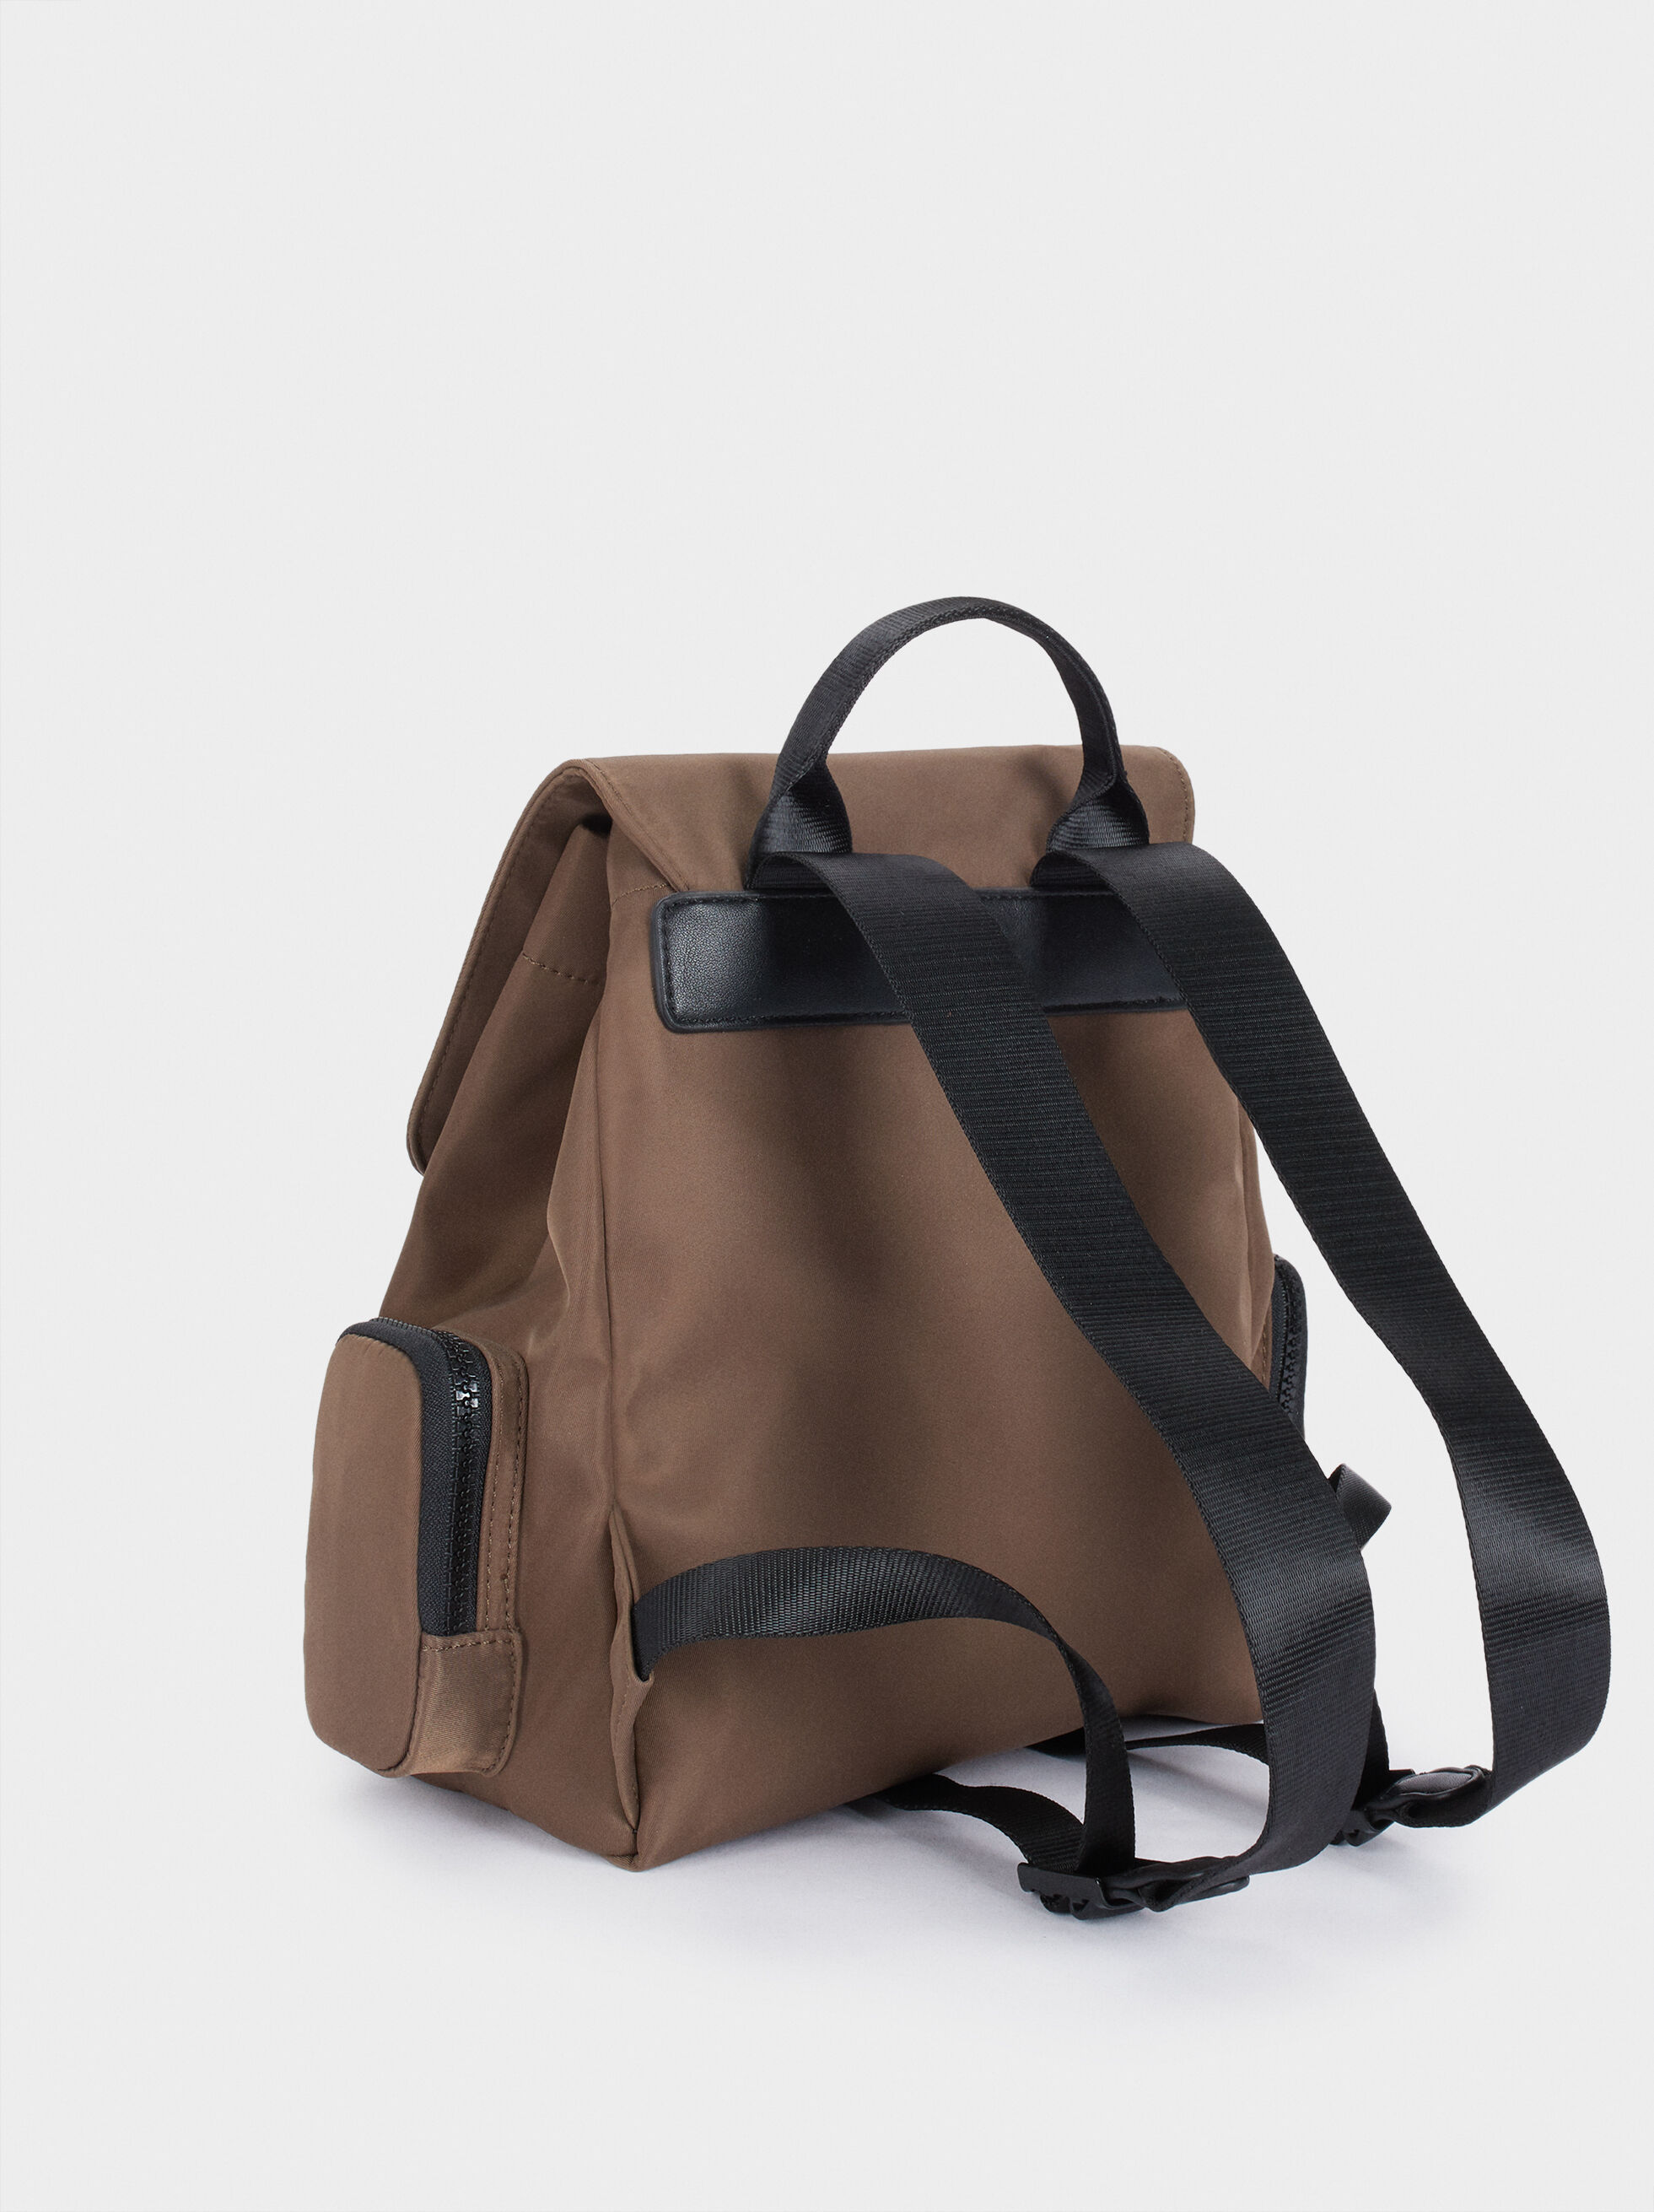 Nylon Backpack With Outside Pockets, Brown, hi-res